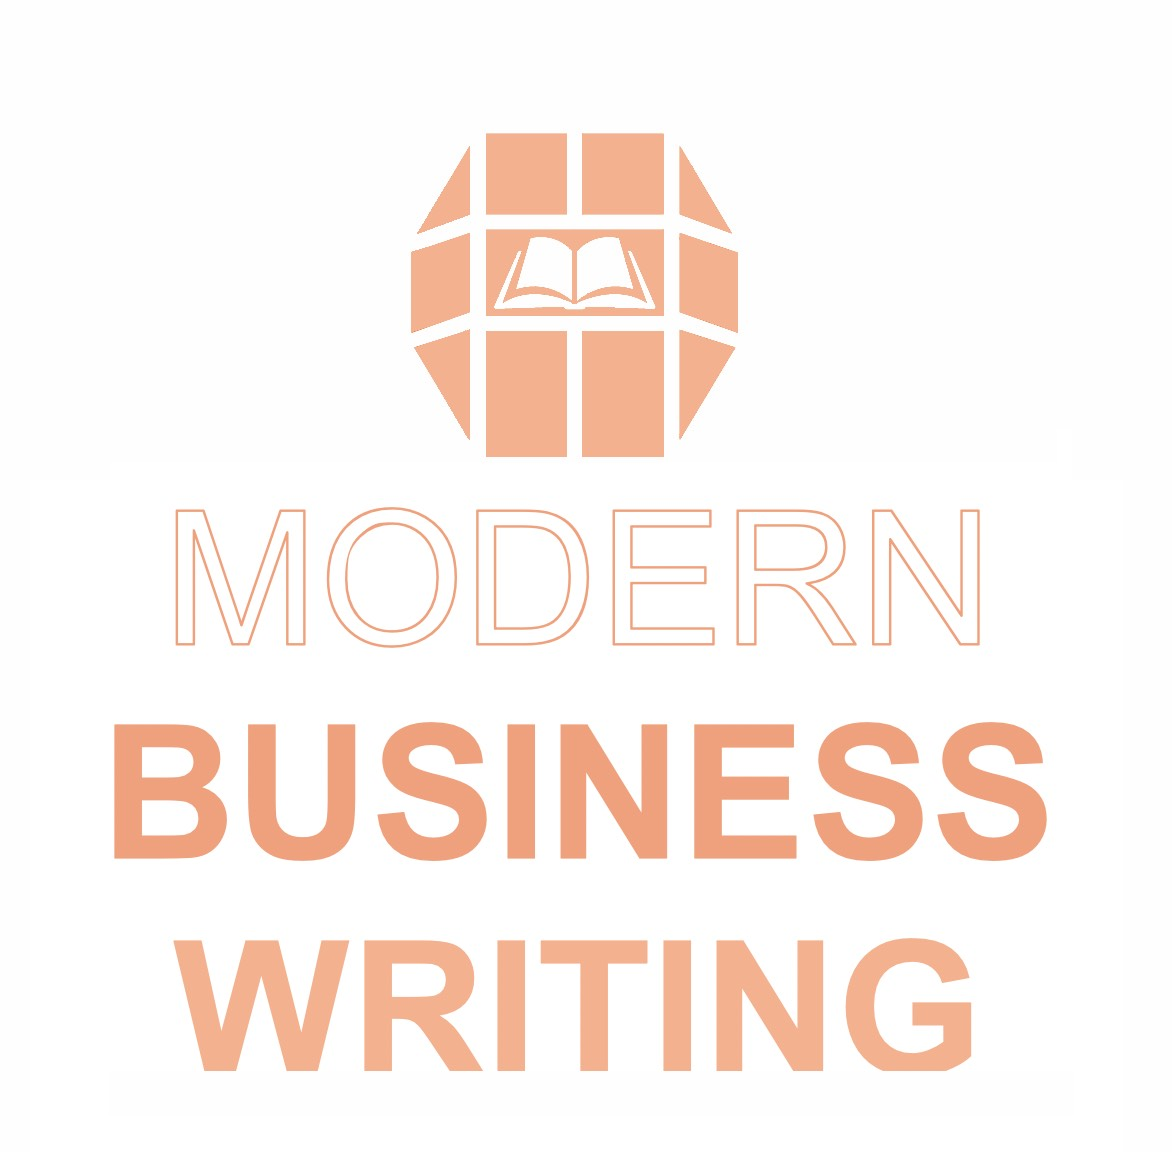 Business Writing - How to Write with Style and Confidence